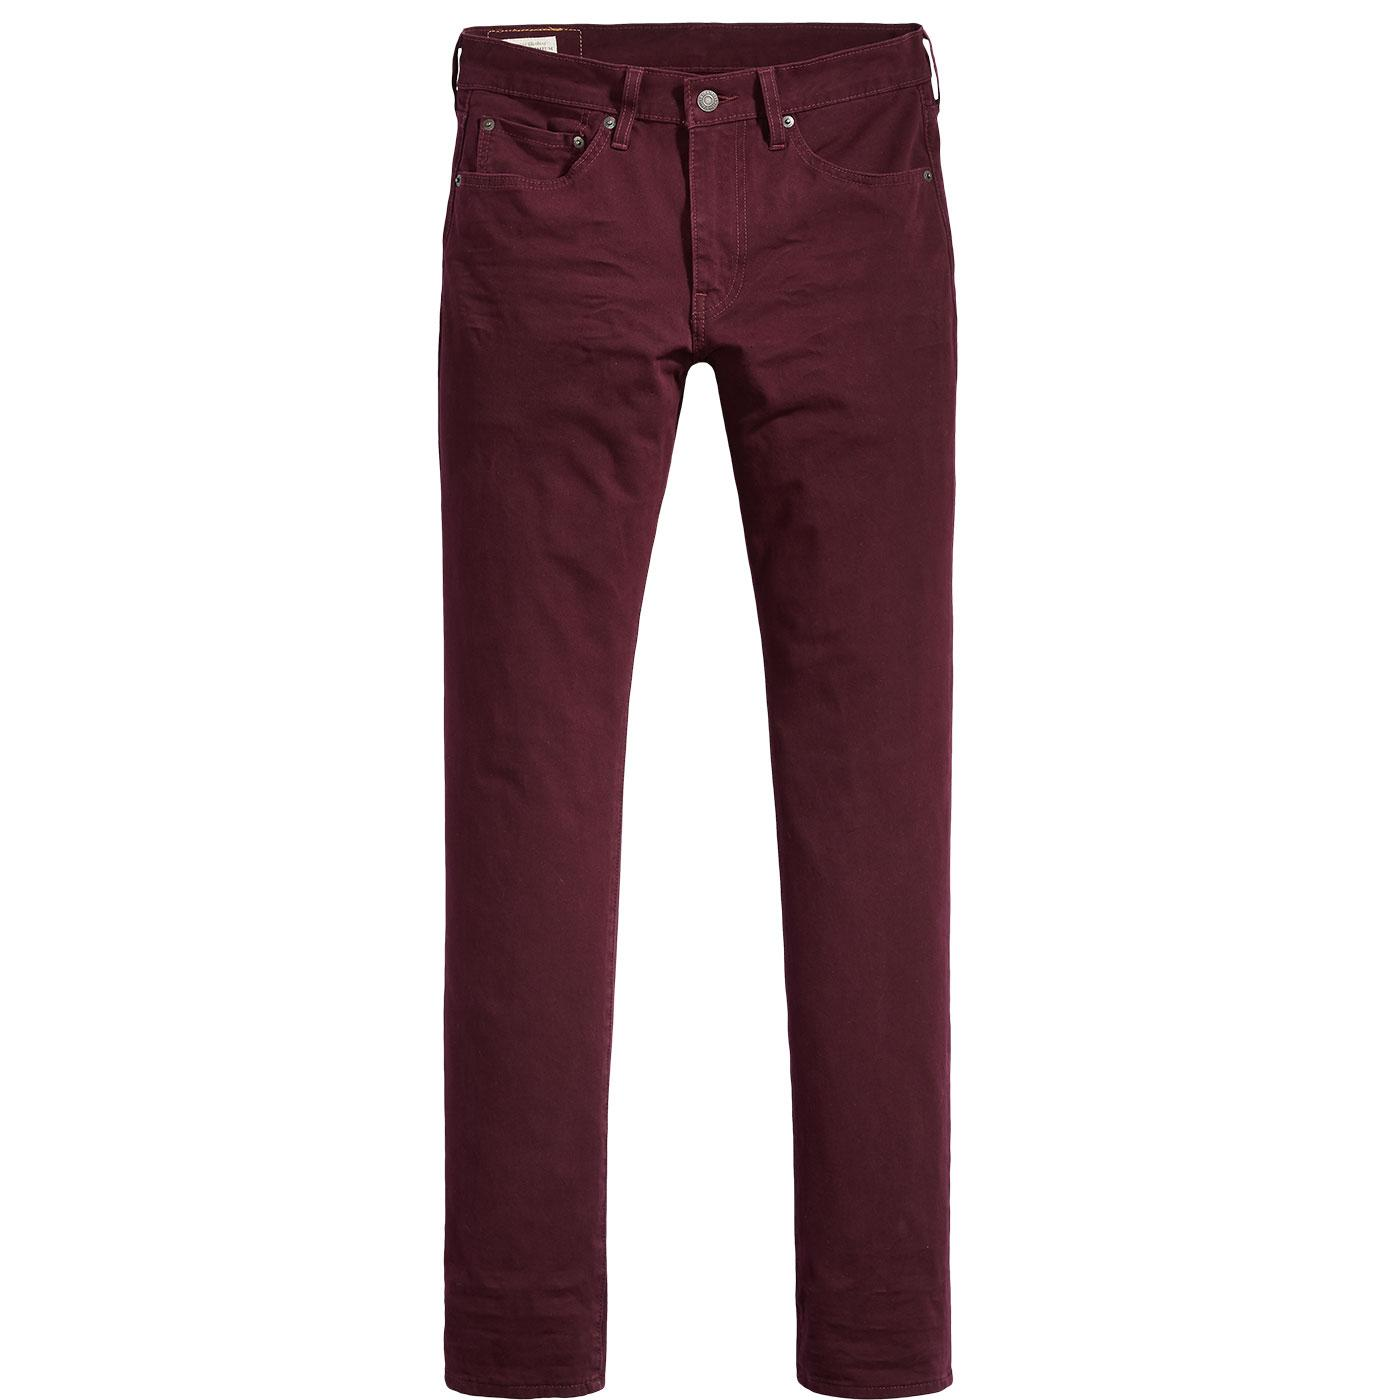 LEVI'S 511 Retro Mod Slim Fit Chinos MULLED WINE